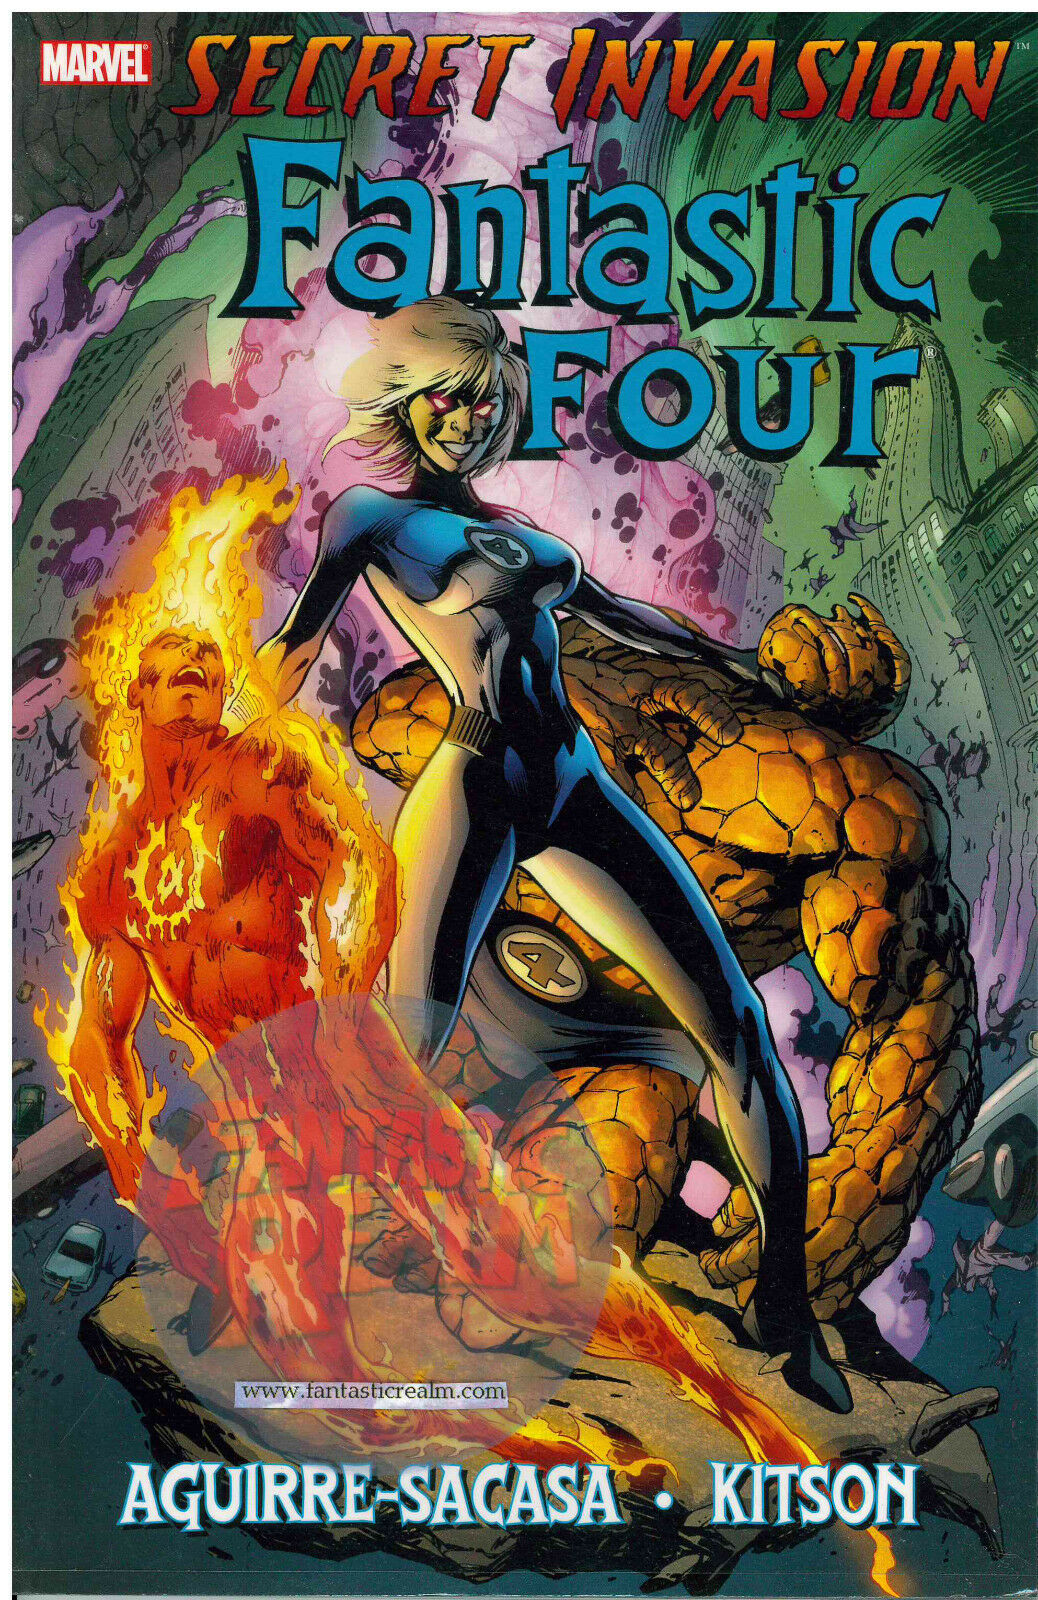 Fantastic Four: Secret Invasion Aguire-Sacasa Kitson Cover Marvel